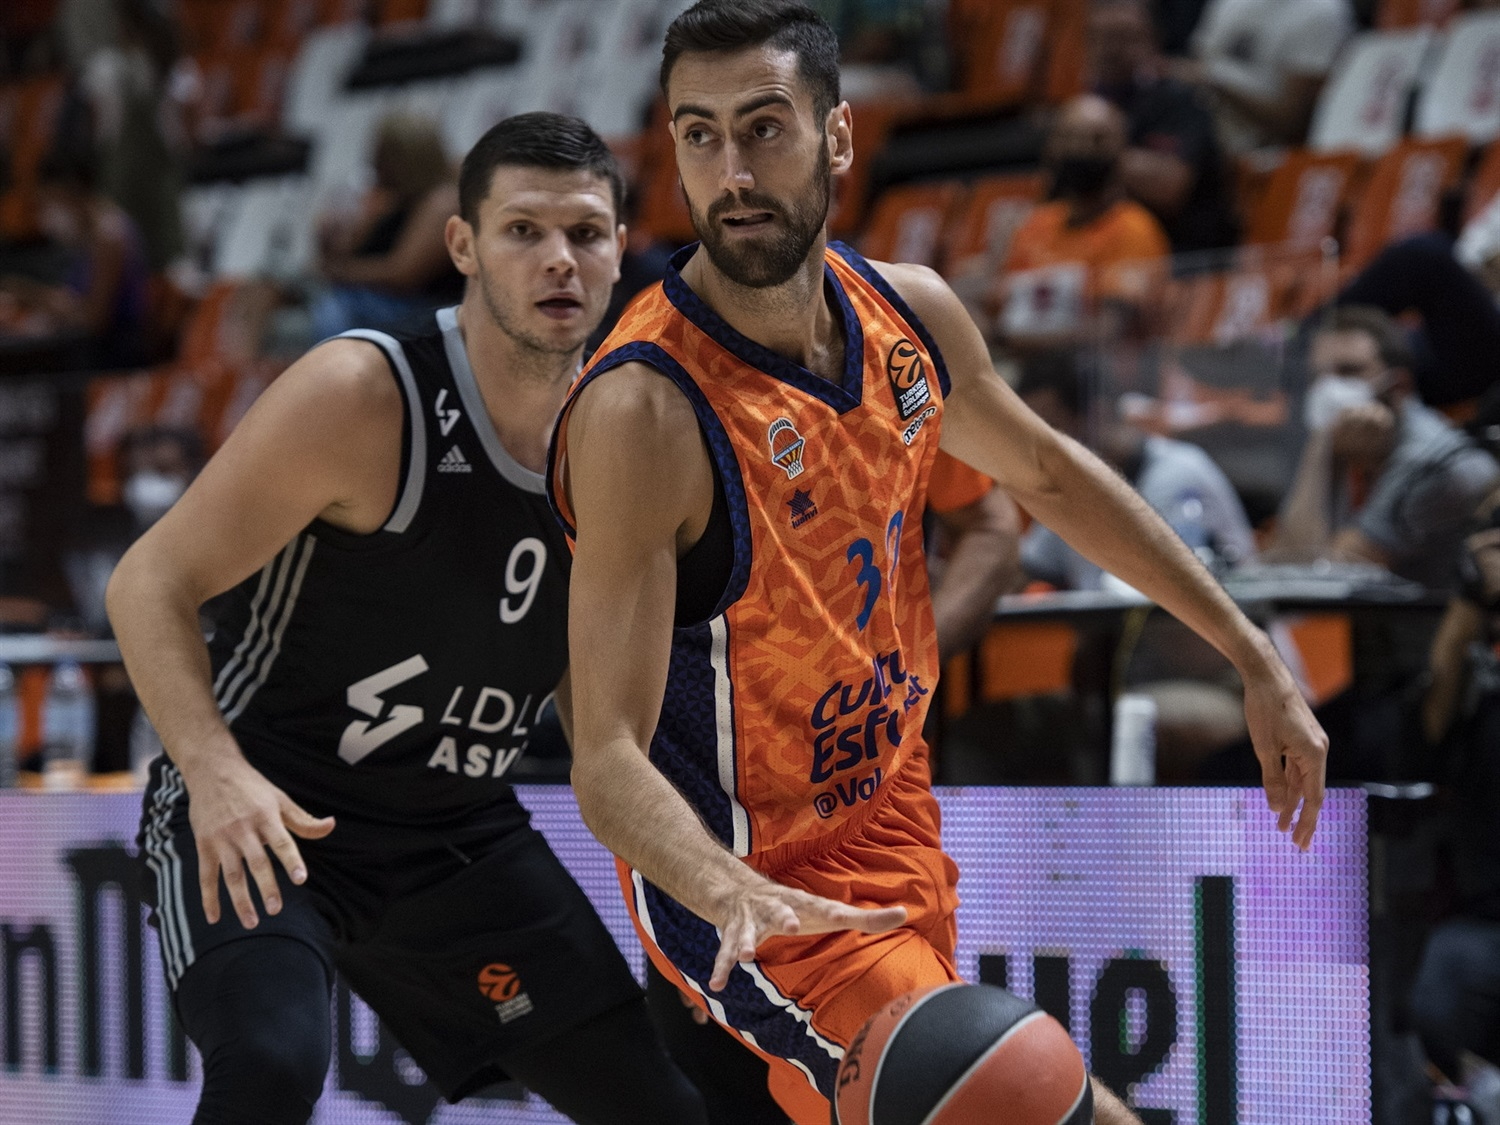 Joan Sastre - Valencia Basket - Preseason Tournament Valencia 2020 - EB20